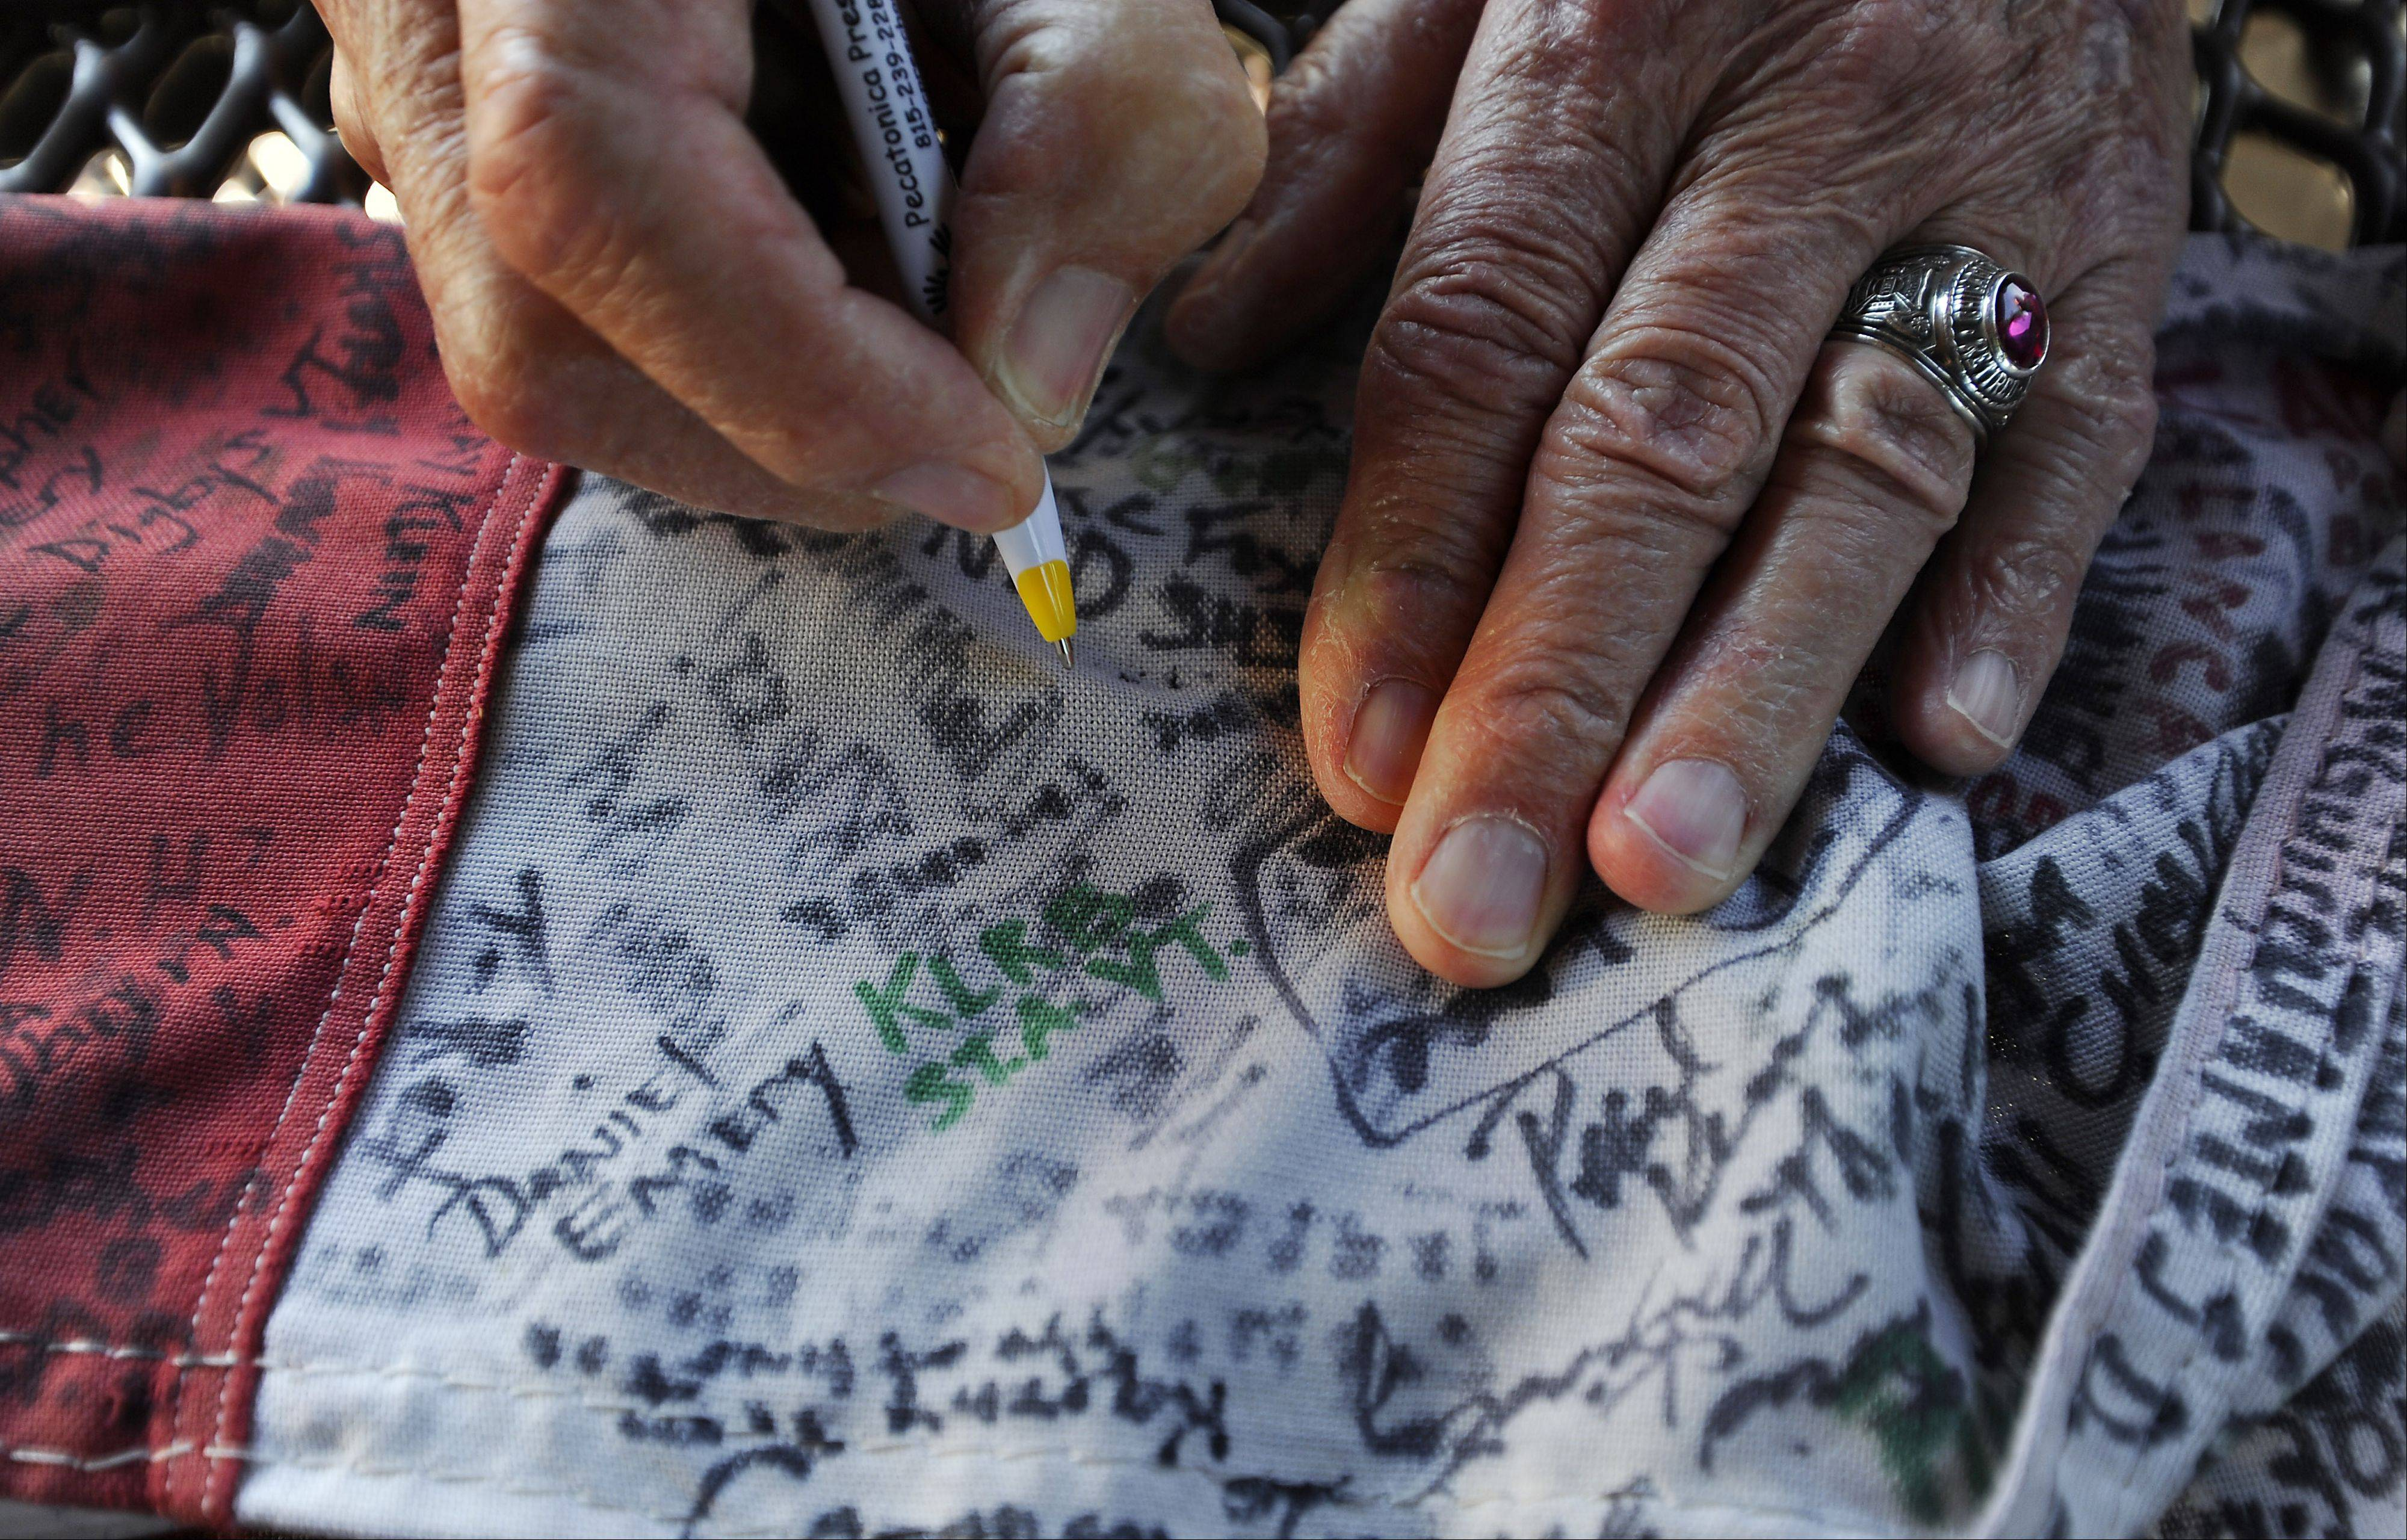 People write messages on sections of remnant of the flag.